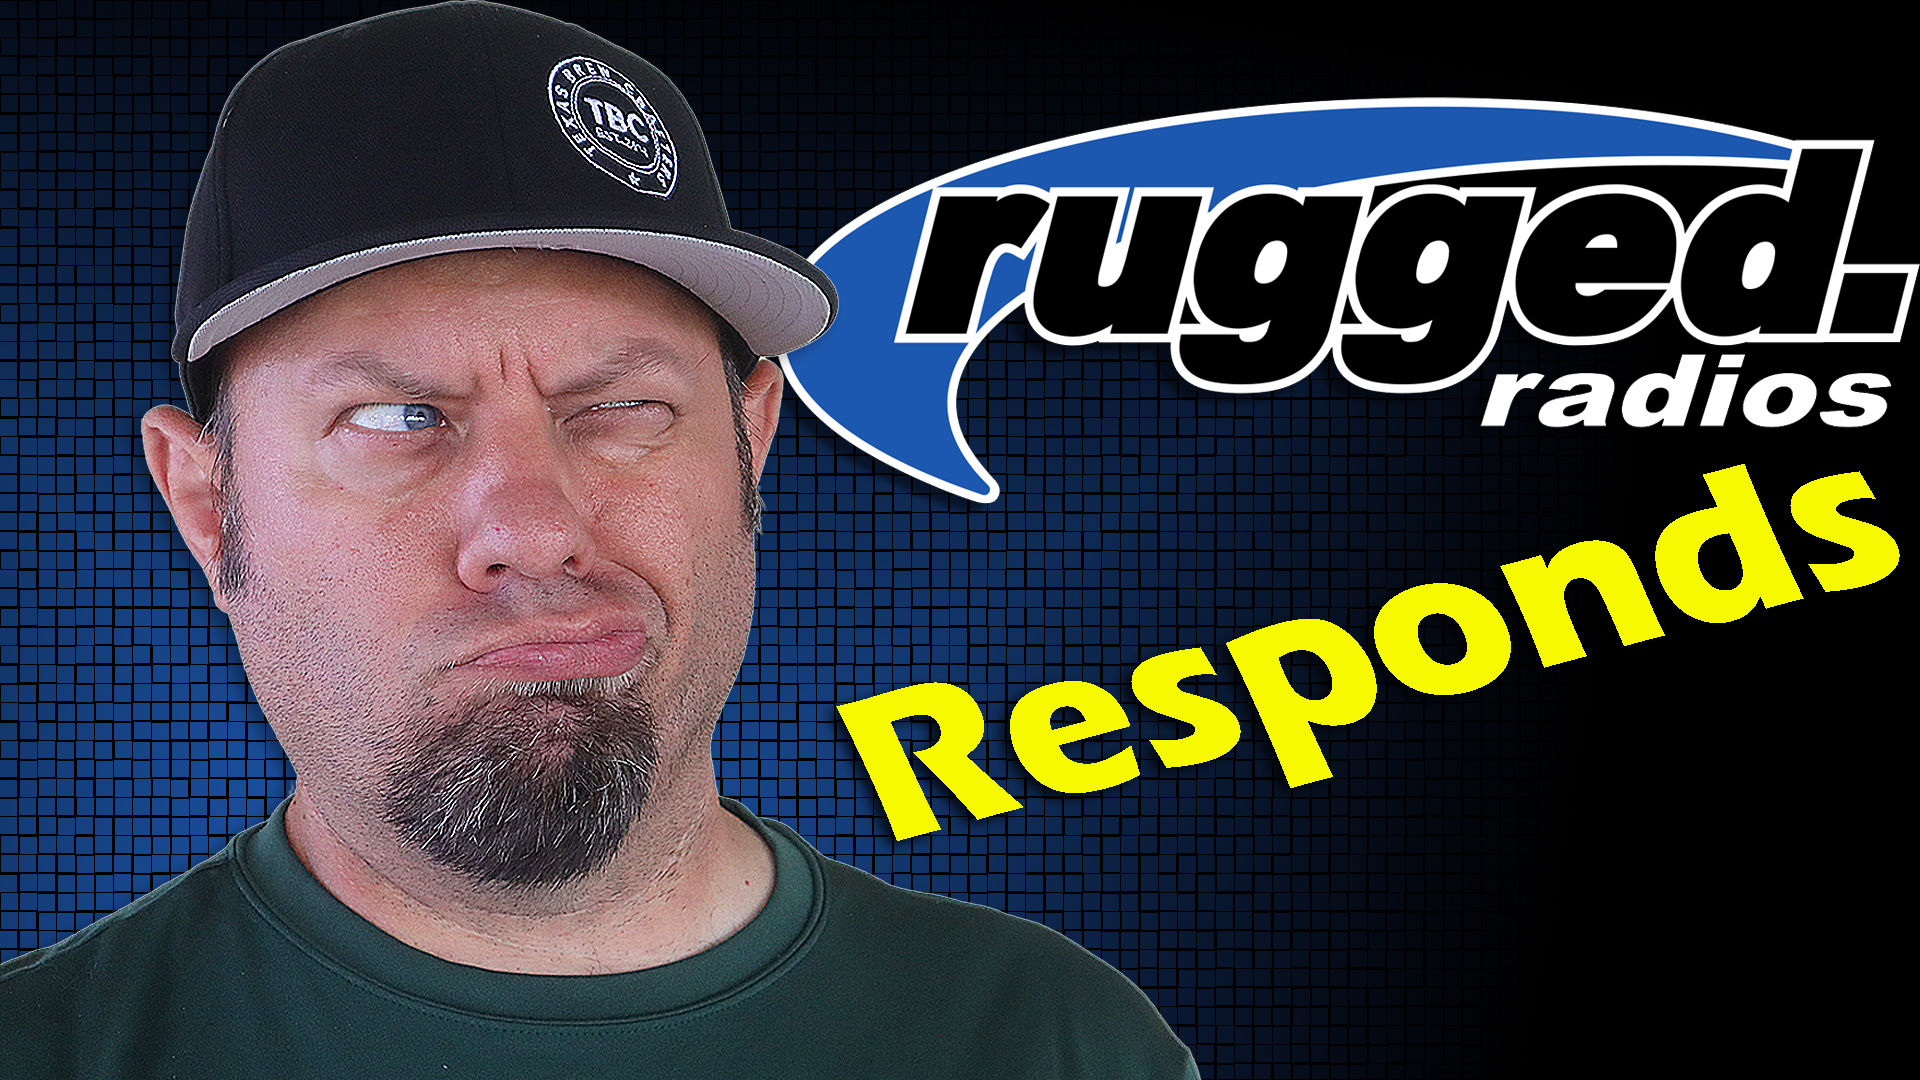 Episode 531: Rugged Radios Responds to the FCC Citation and my YouTube Video